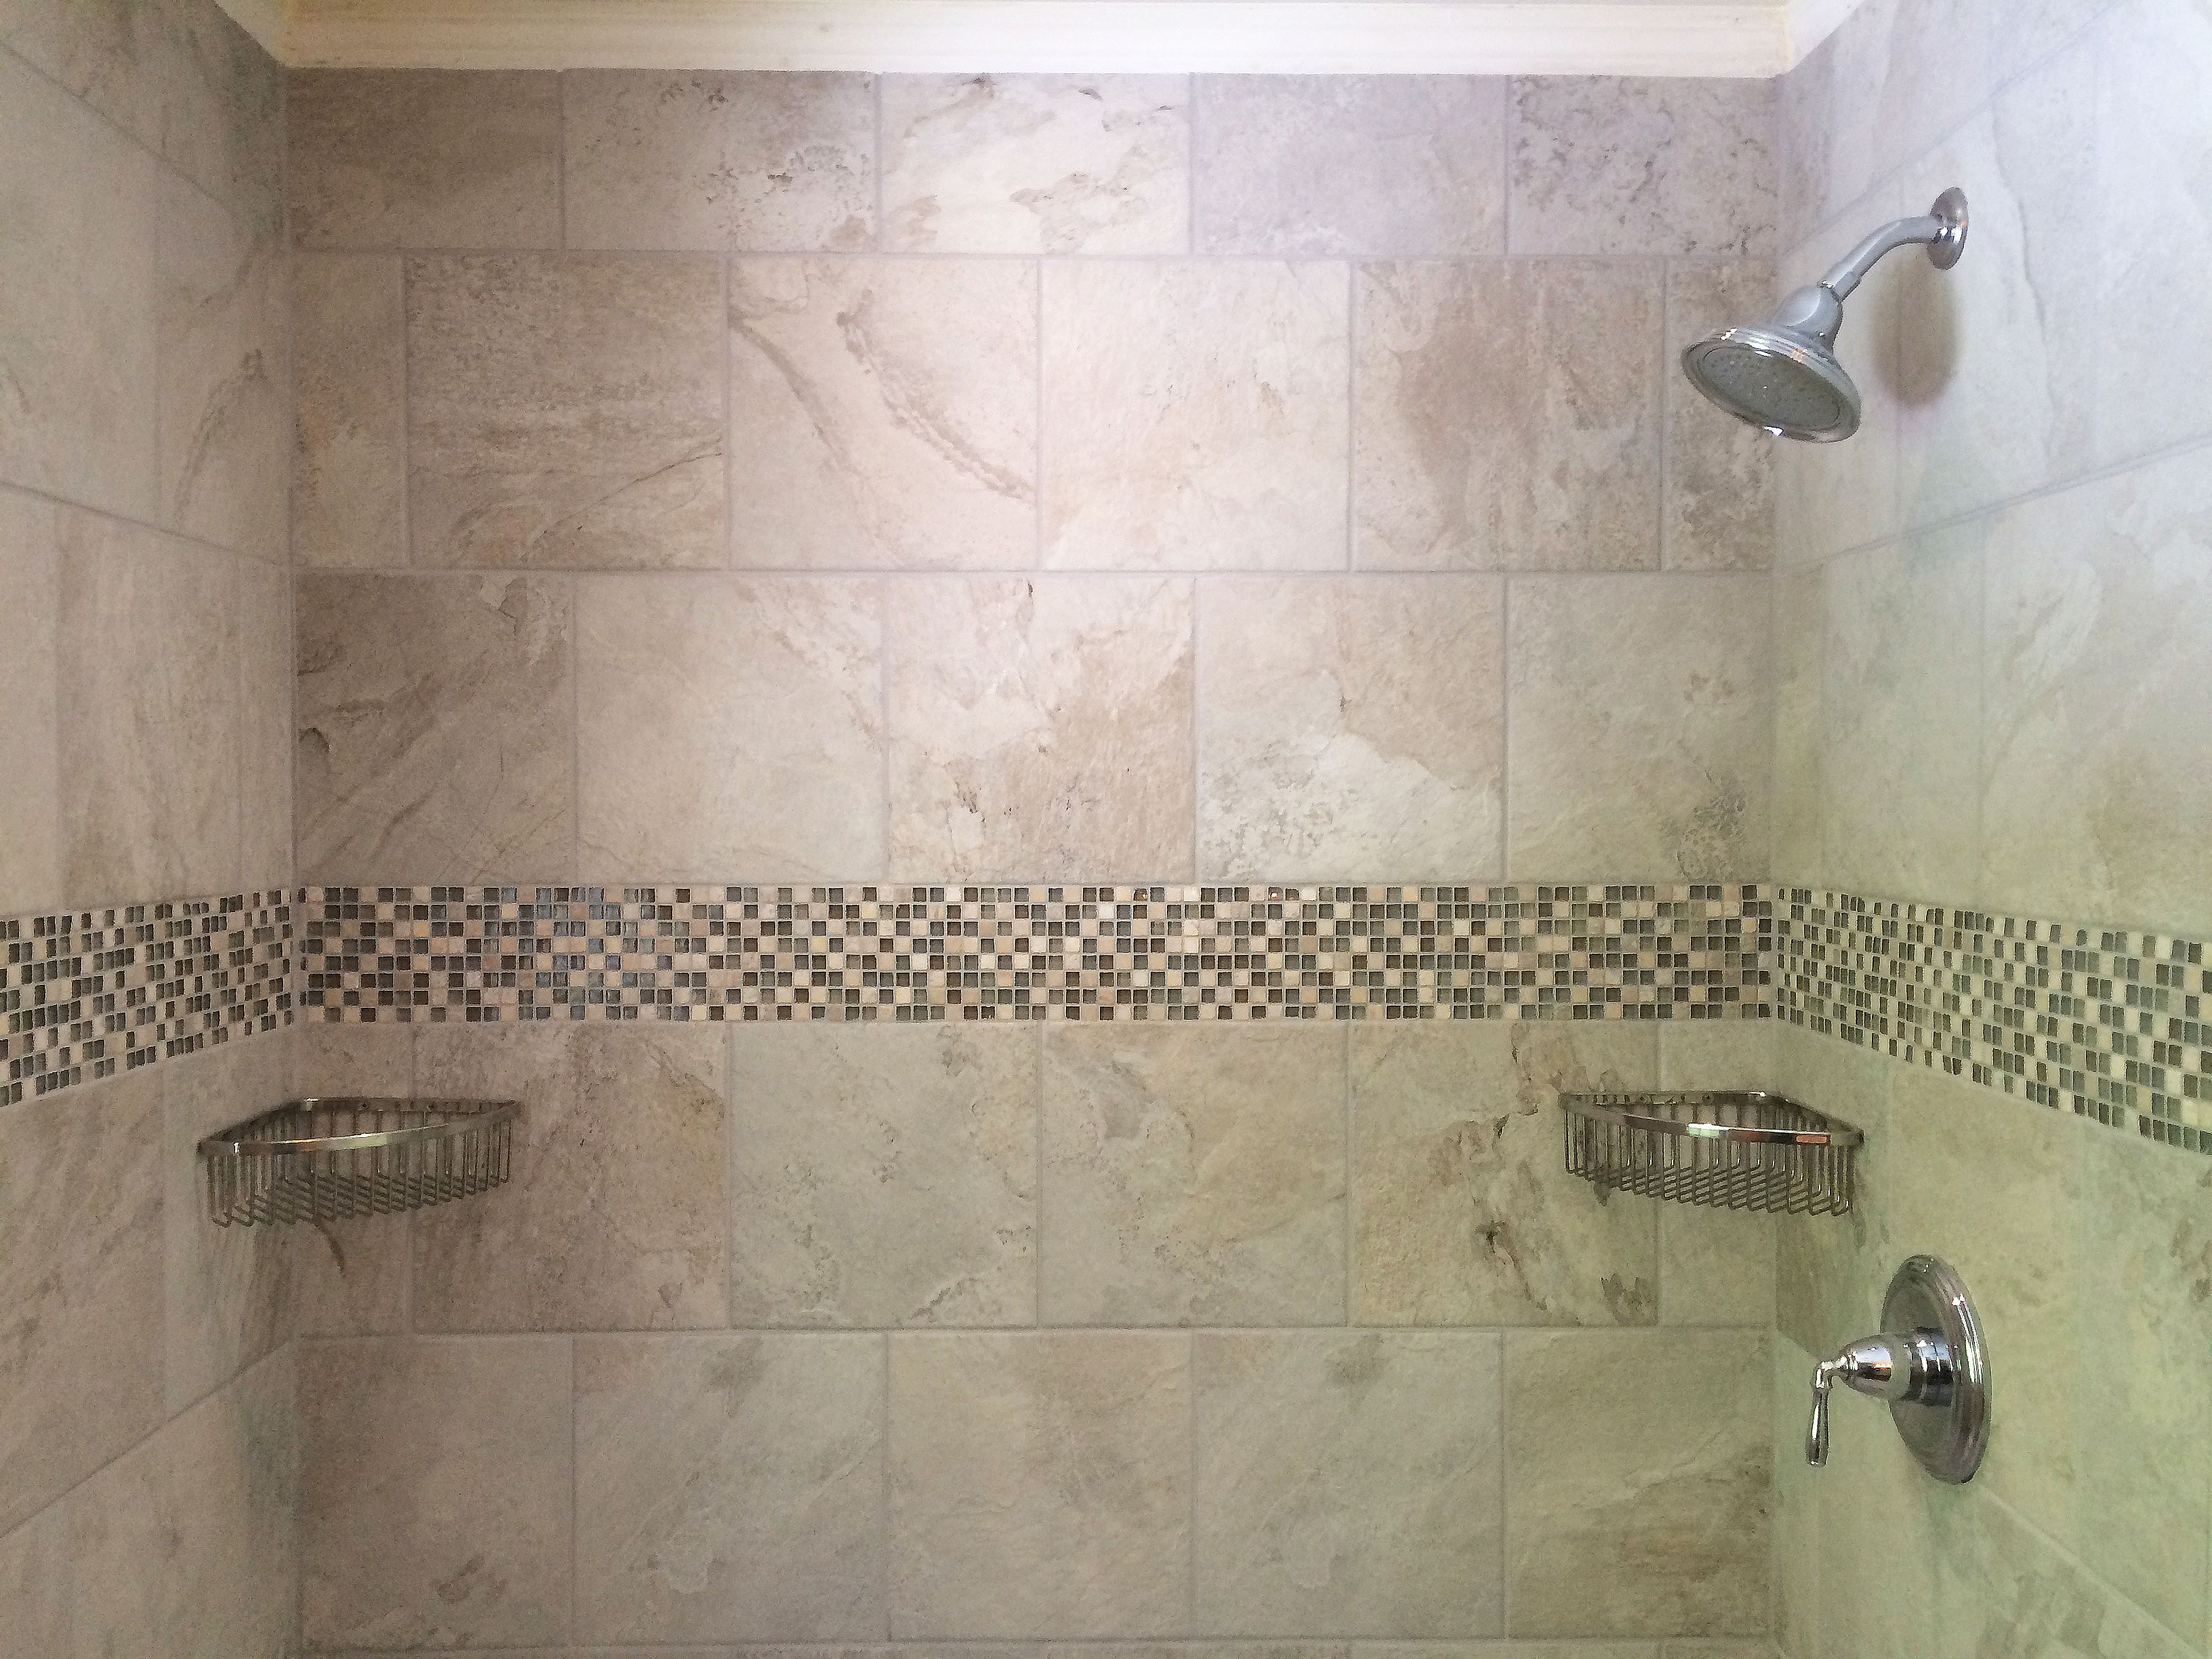 Bathroom tile corner trim -  Spa Smoked Gray Grout W 2 Kohler Large Baskets Chrome Mounted Corner Baskets Kohler Devonshire Shower Trim W Devonshire 2 5 Gpm Shower Head Chrome